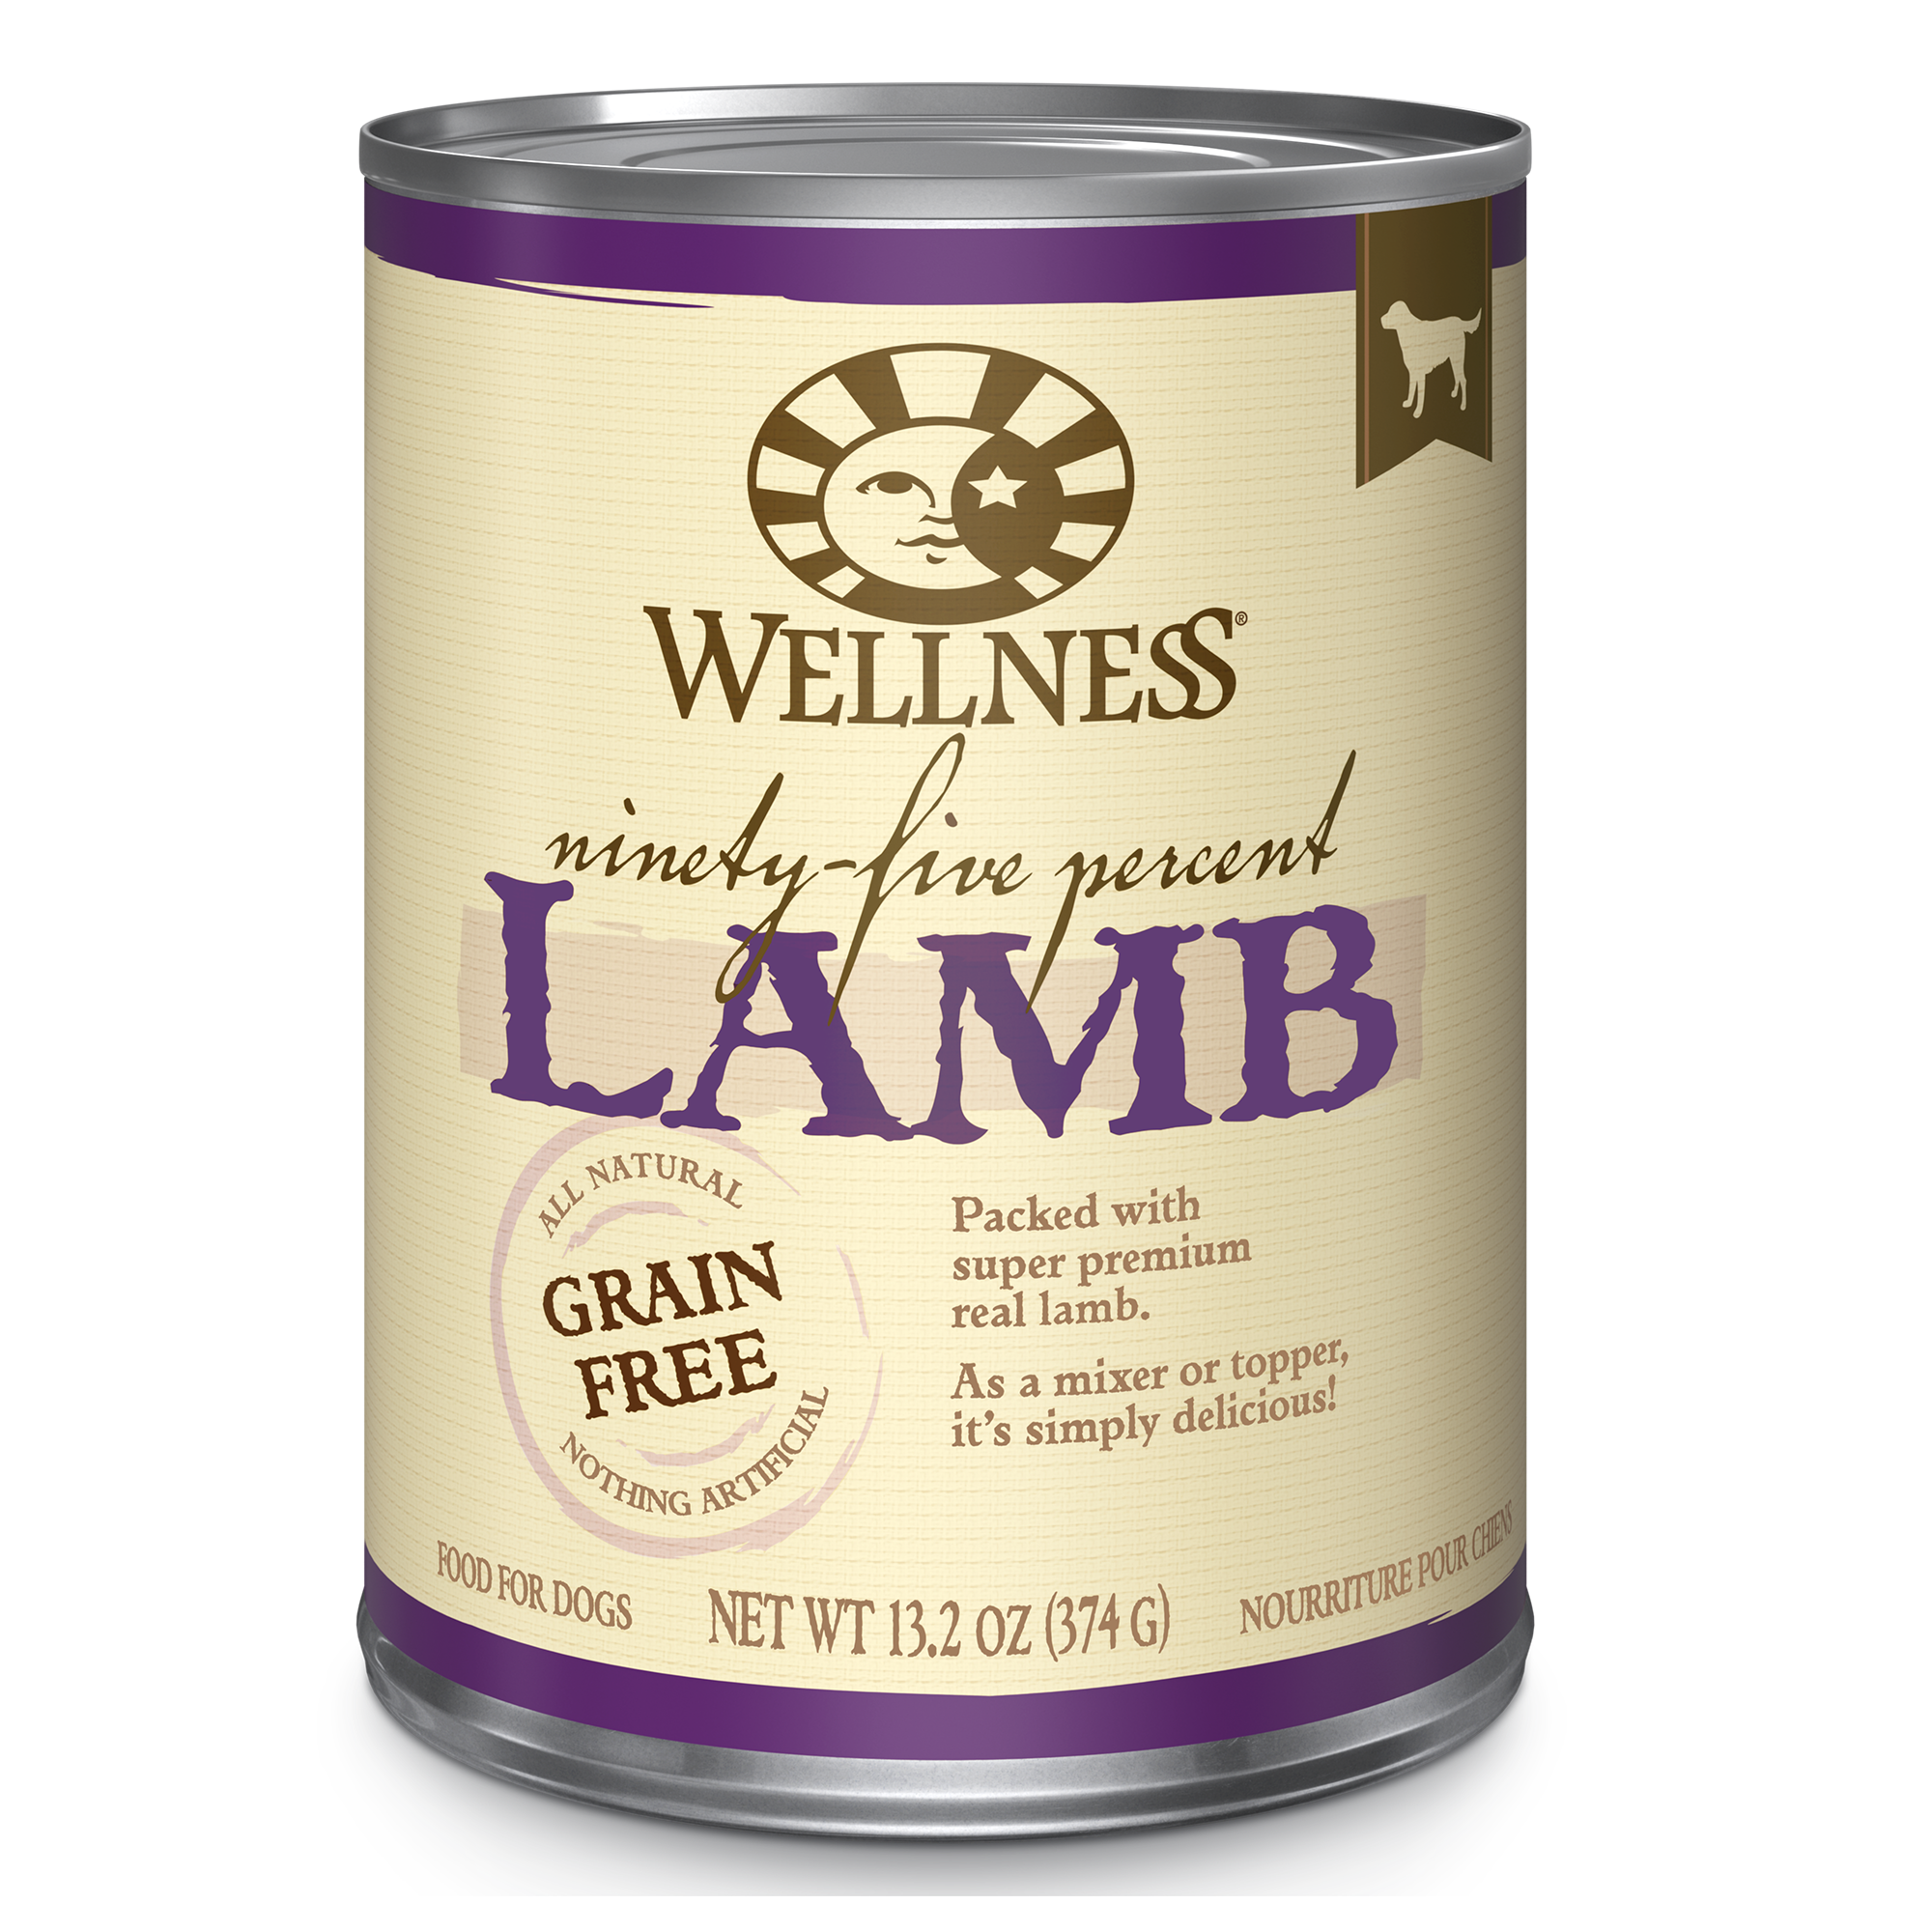 Wellness Grain Free Lamb 95% Canned Dog Food (13oz)